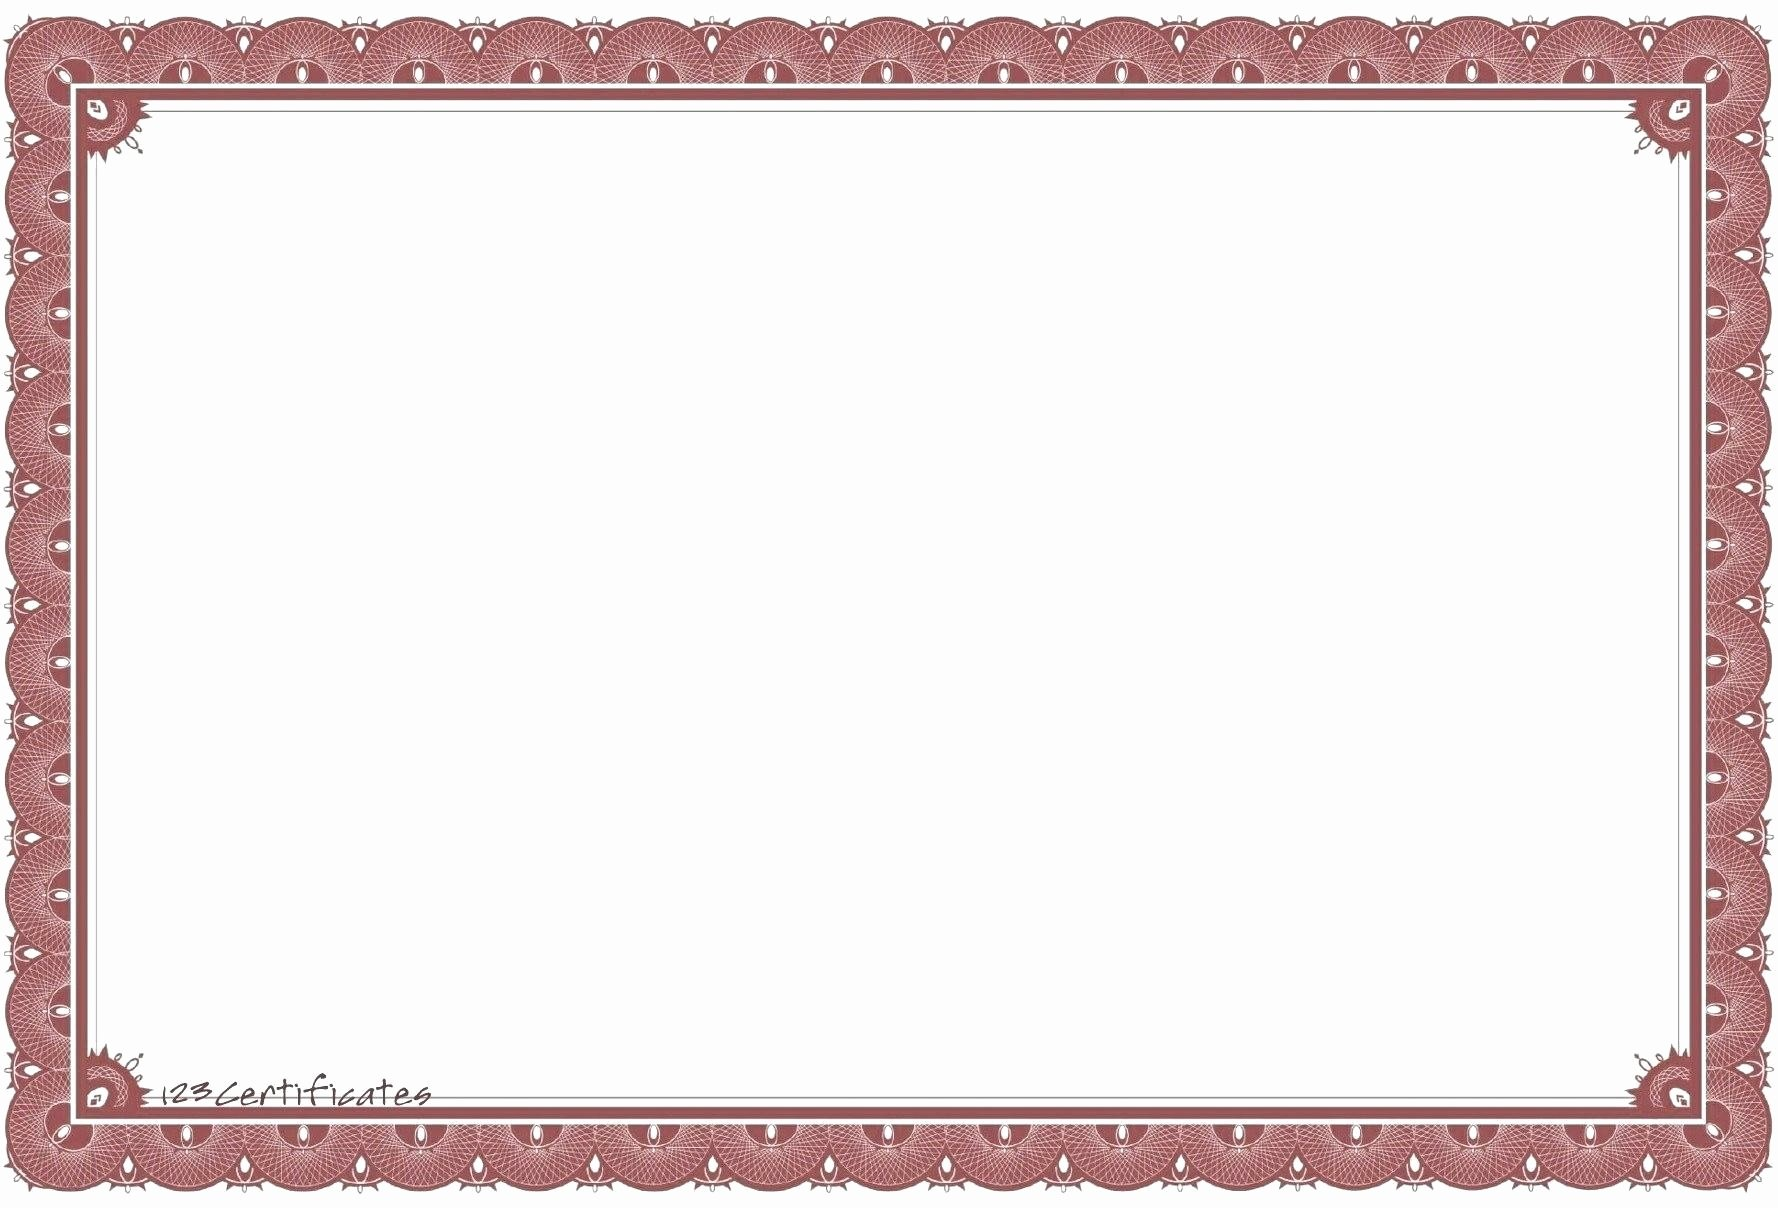 Certificate Borders for Word Beautiful Certificate Borders for Microsoft Word Flowersheet